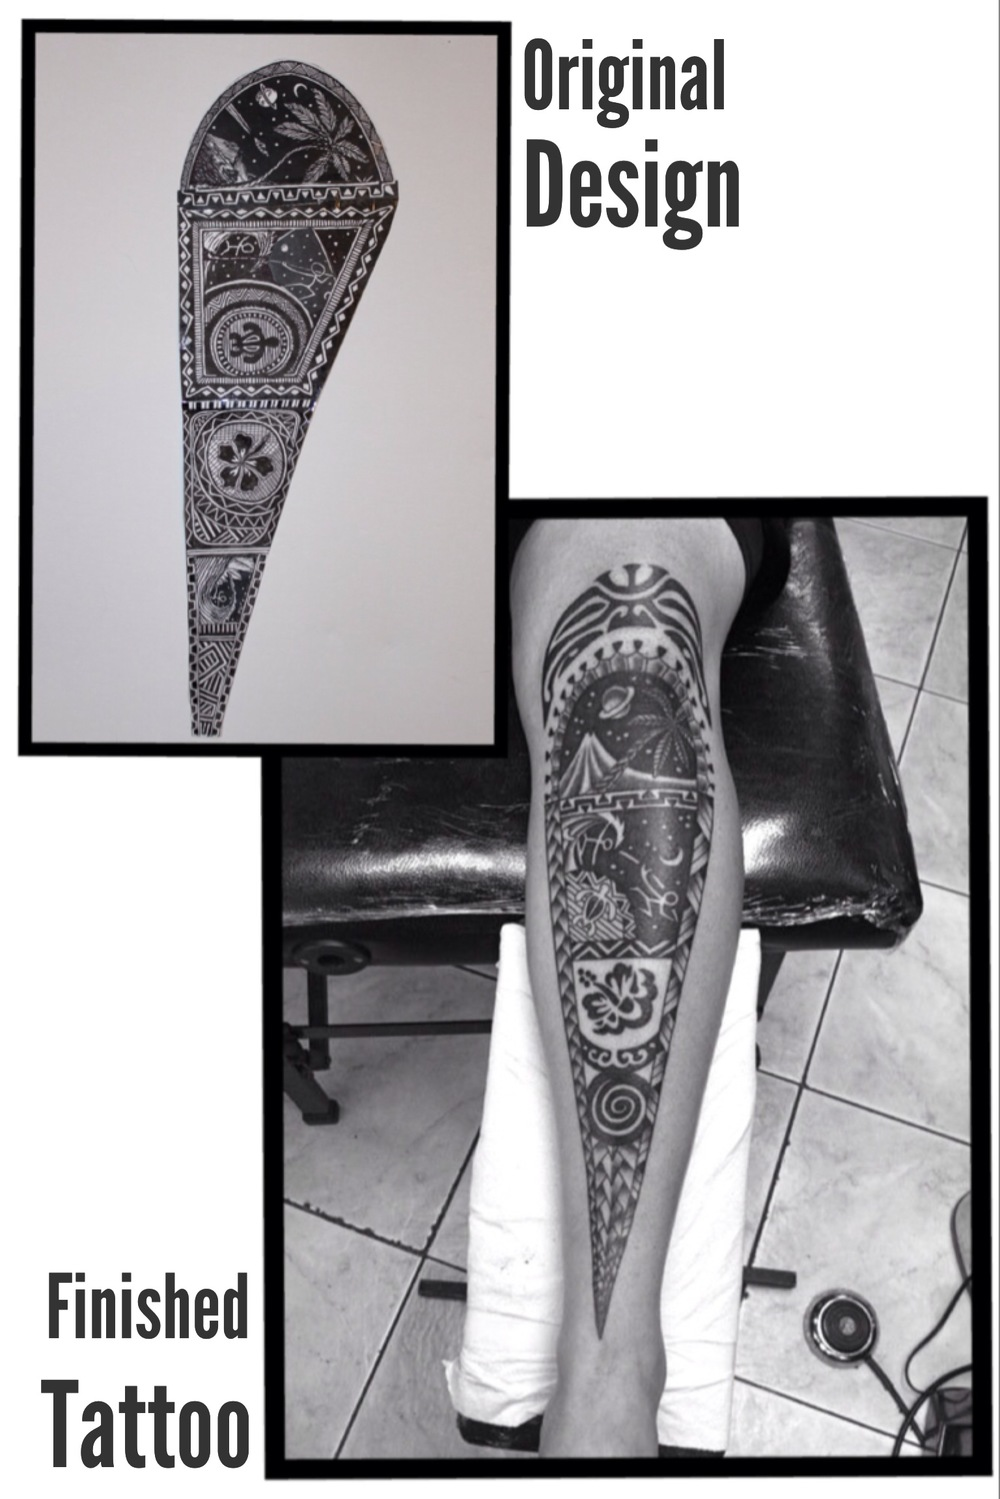 *The original design shown for this tattoo was a collaboration with a local artist in Hawaii.